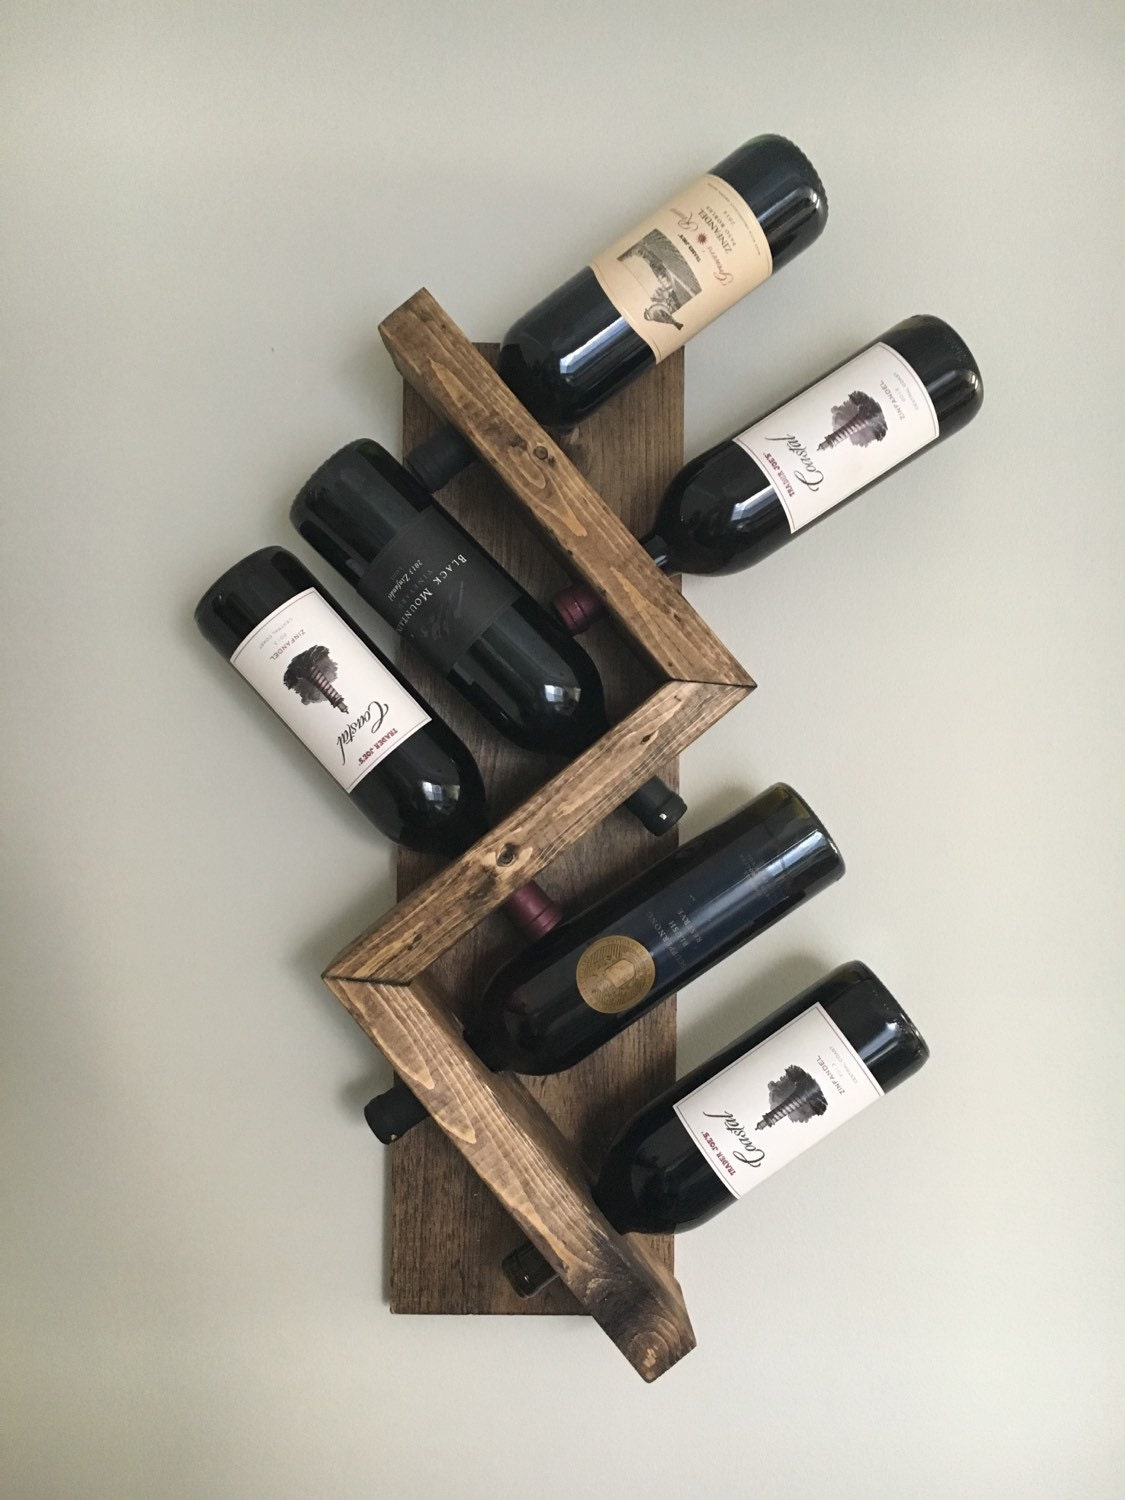 Zig zag wine rack z geometric rustic wood wine bottle display - Wine rack shaped like wine bottle ...